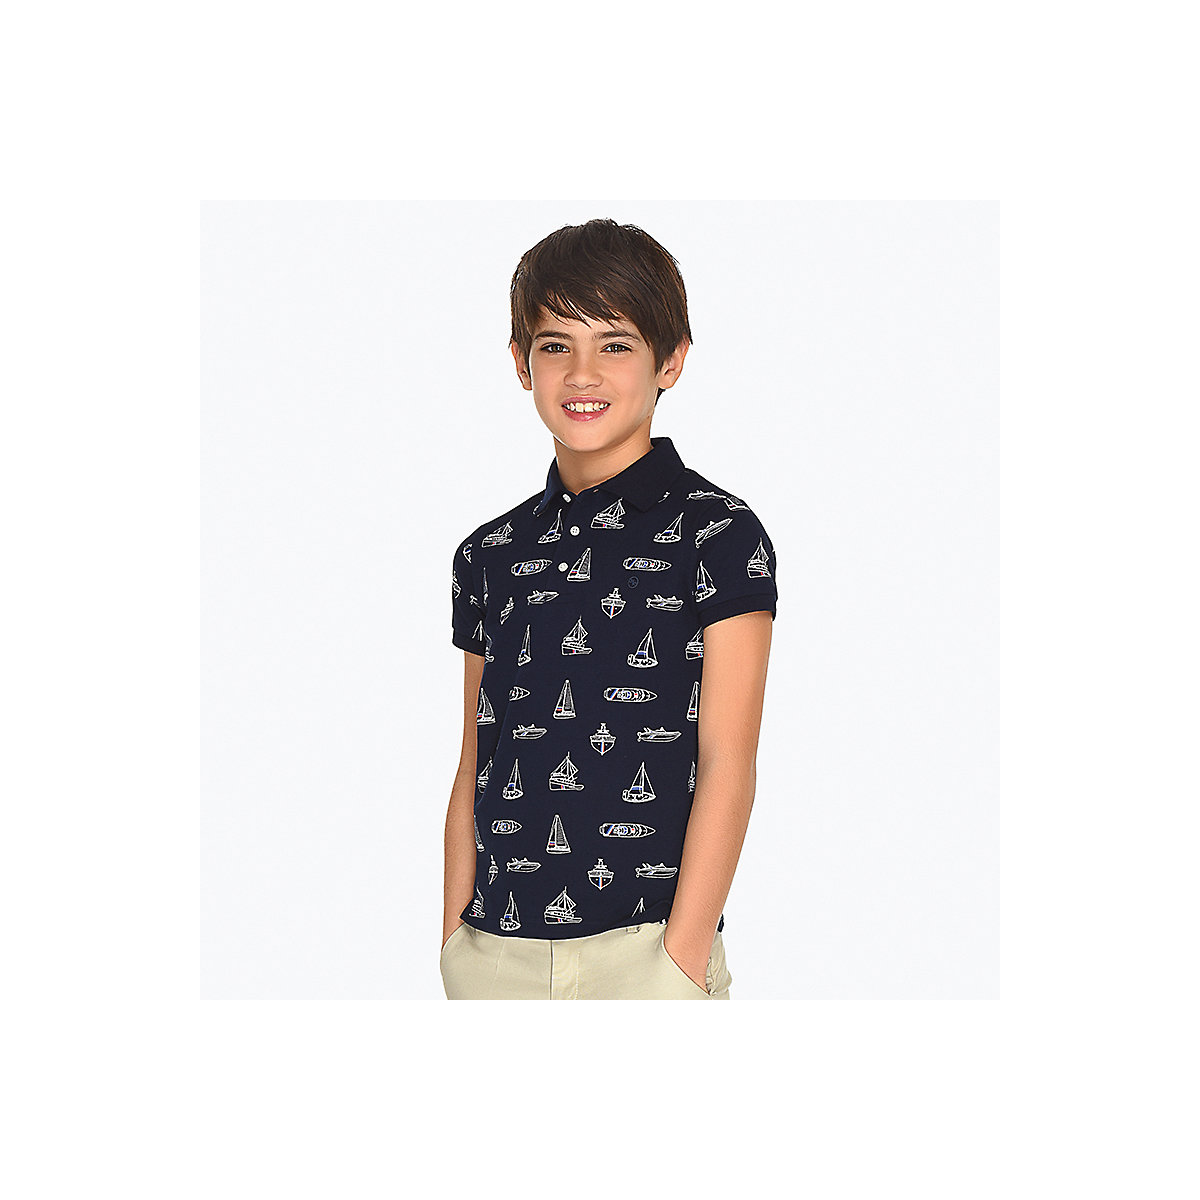 MAYORAL Polo Shirts 10690486 Children Clothing T-shirt Shirt The Print For Boys